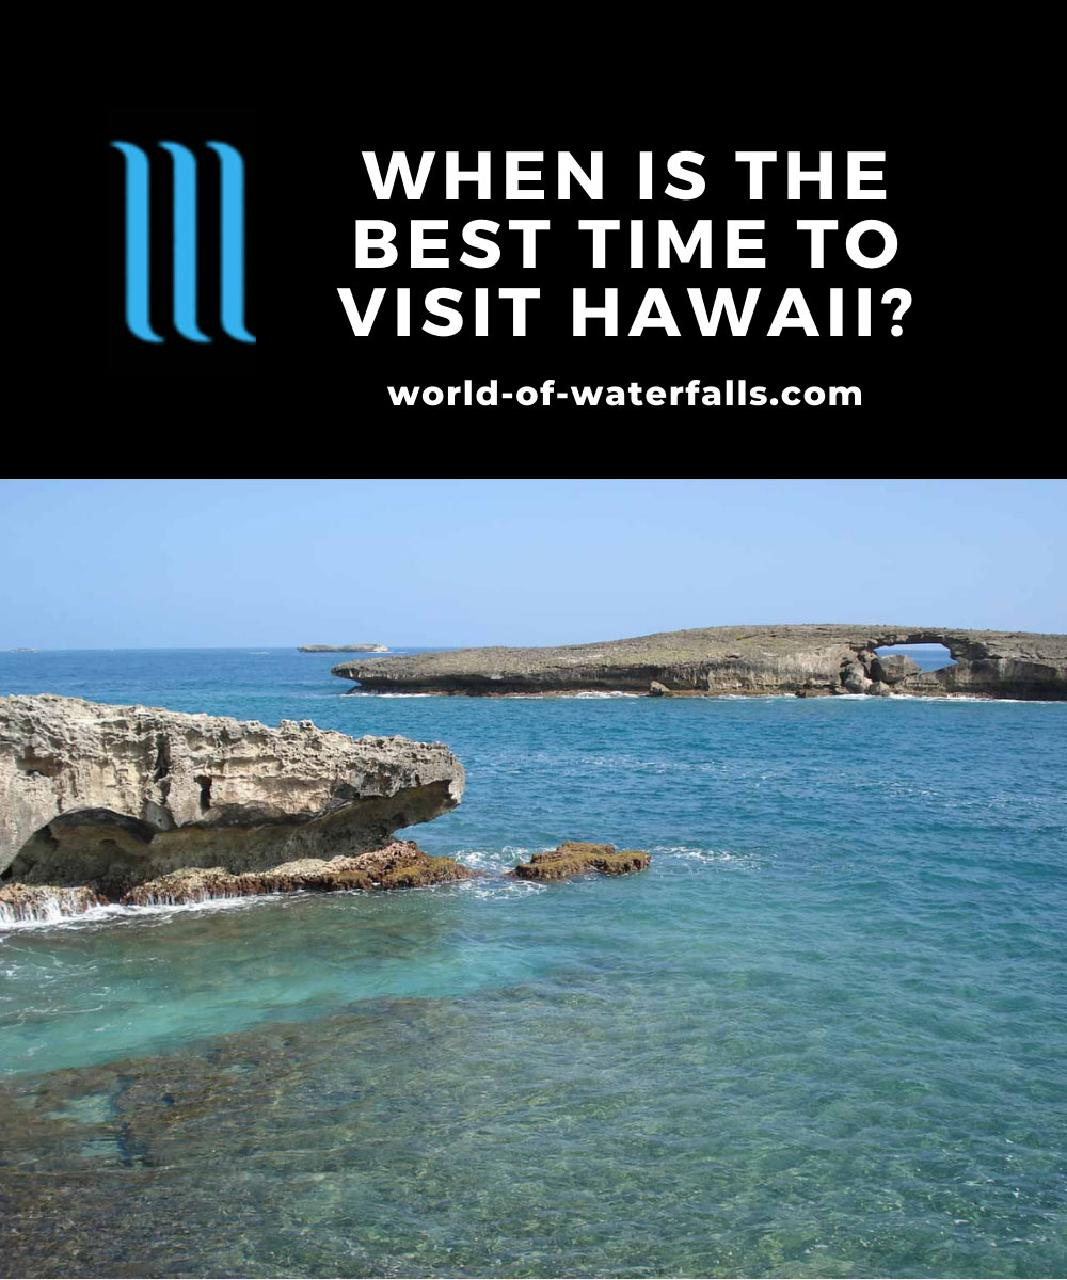 When Is The Best Time To Visit Hawaii?